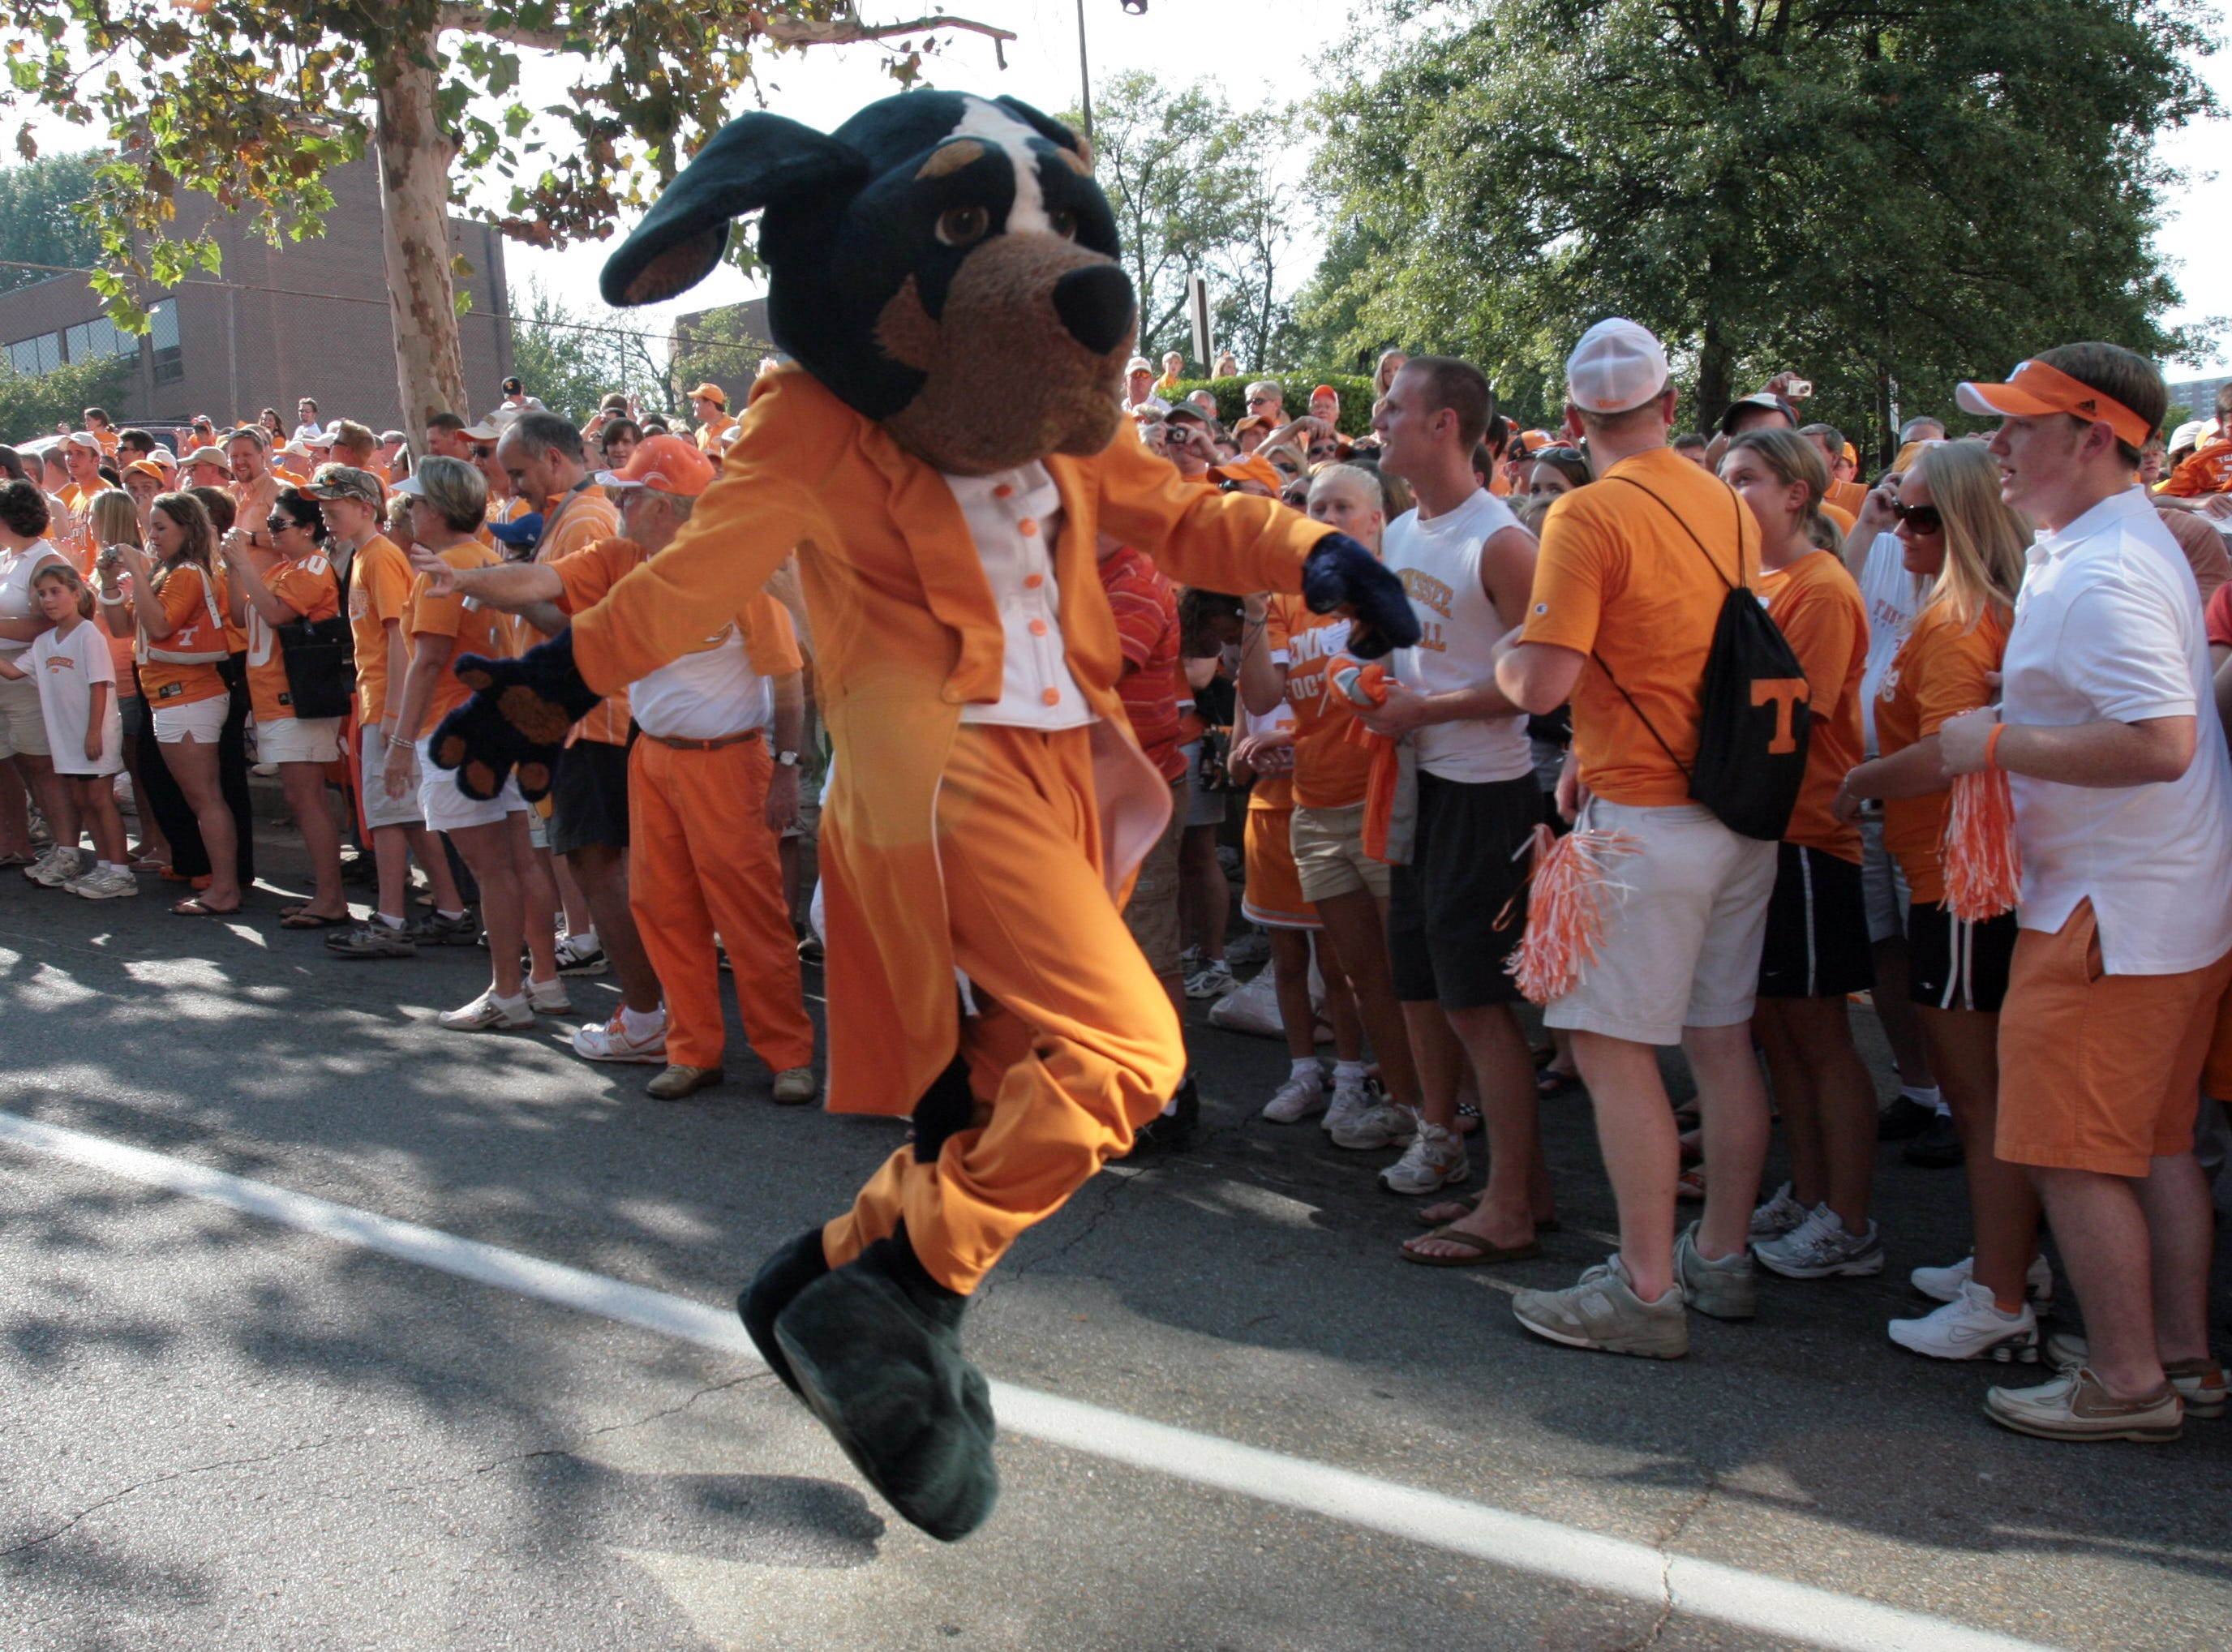 Smokey dances down the street during the Vol Walk before the football game against Southern Mississippi on Saturday at Neyland Stadium. The Vols won 39-19, improving their season record to 1-1.